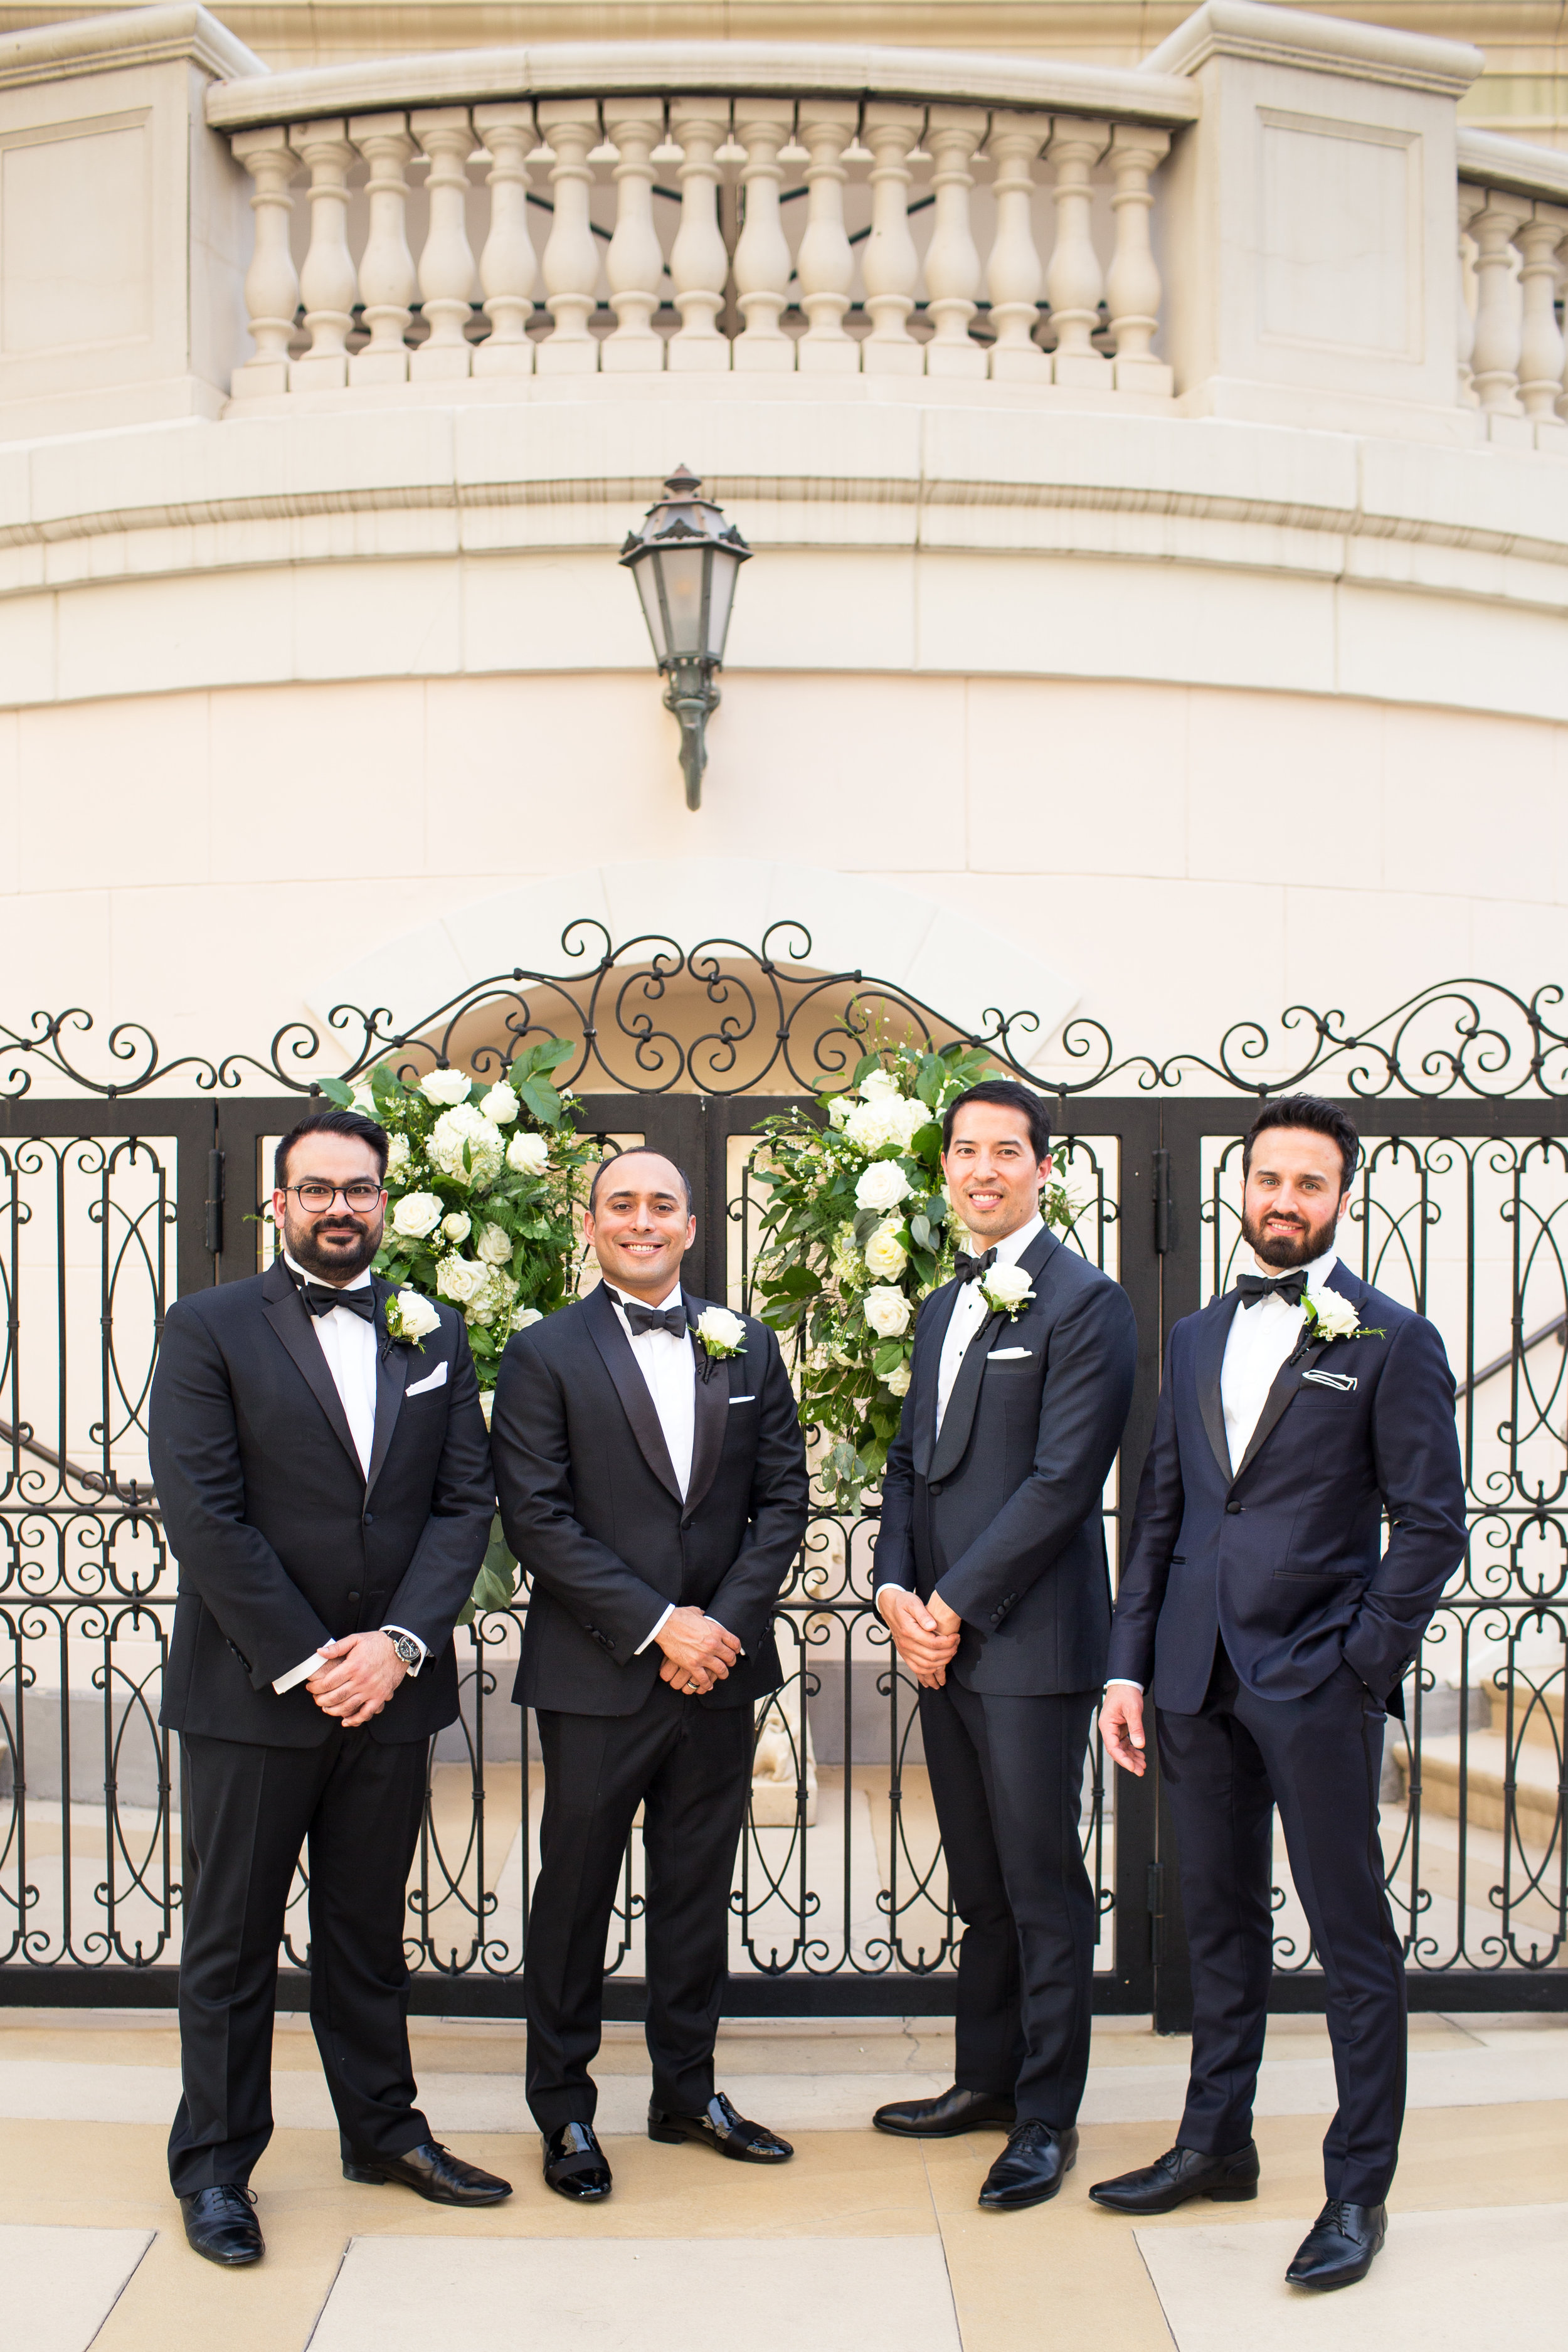 Groomsmen in tuxedos at Italian Style wedding.Wedding Planner:  Andrea Eppolito Events   | Photography  D2 Tuscan Wedding Photography  | Videography  M Place Productions  | Venue & Catering:  Bellagio  | Floral & Decor:  Destinations by Design  | Lighting:  LED Unplugged   | Music: Classical Entertainment &  DJ Mike Fox  | Hair & Make Up:  Amelia C & Co